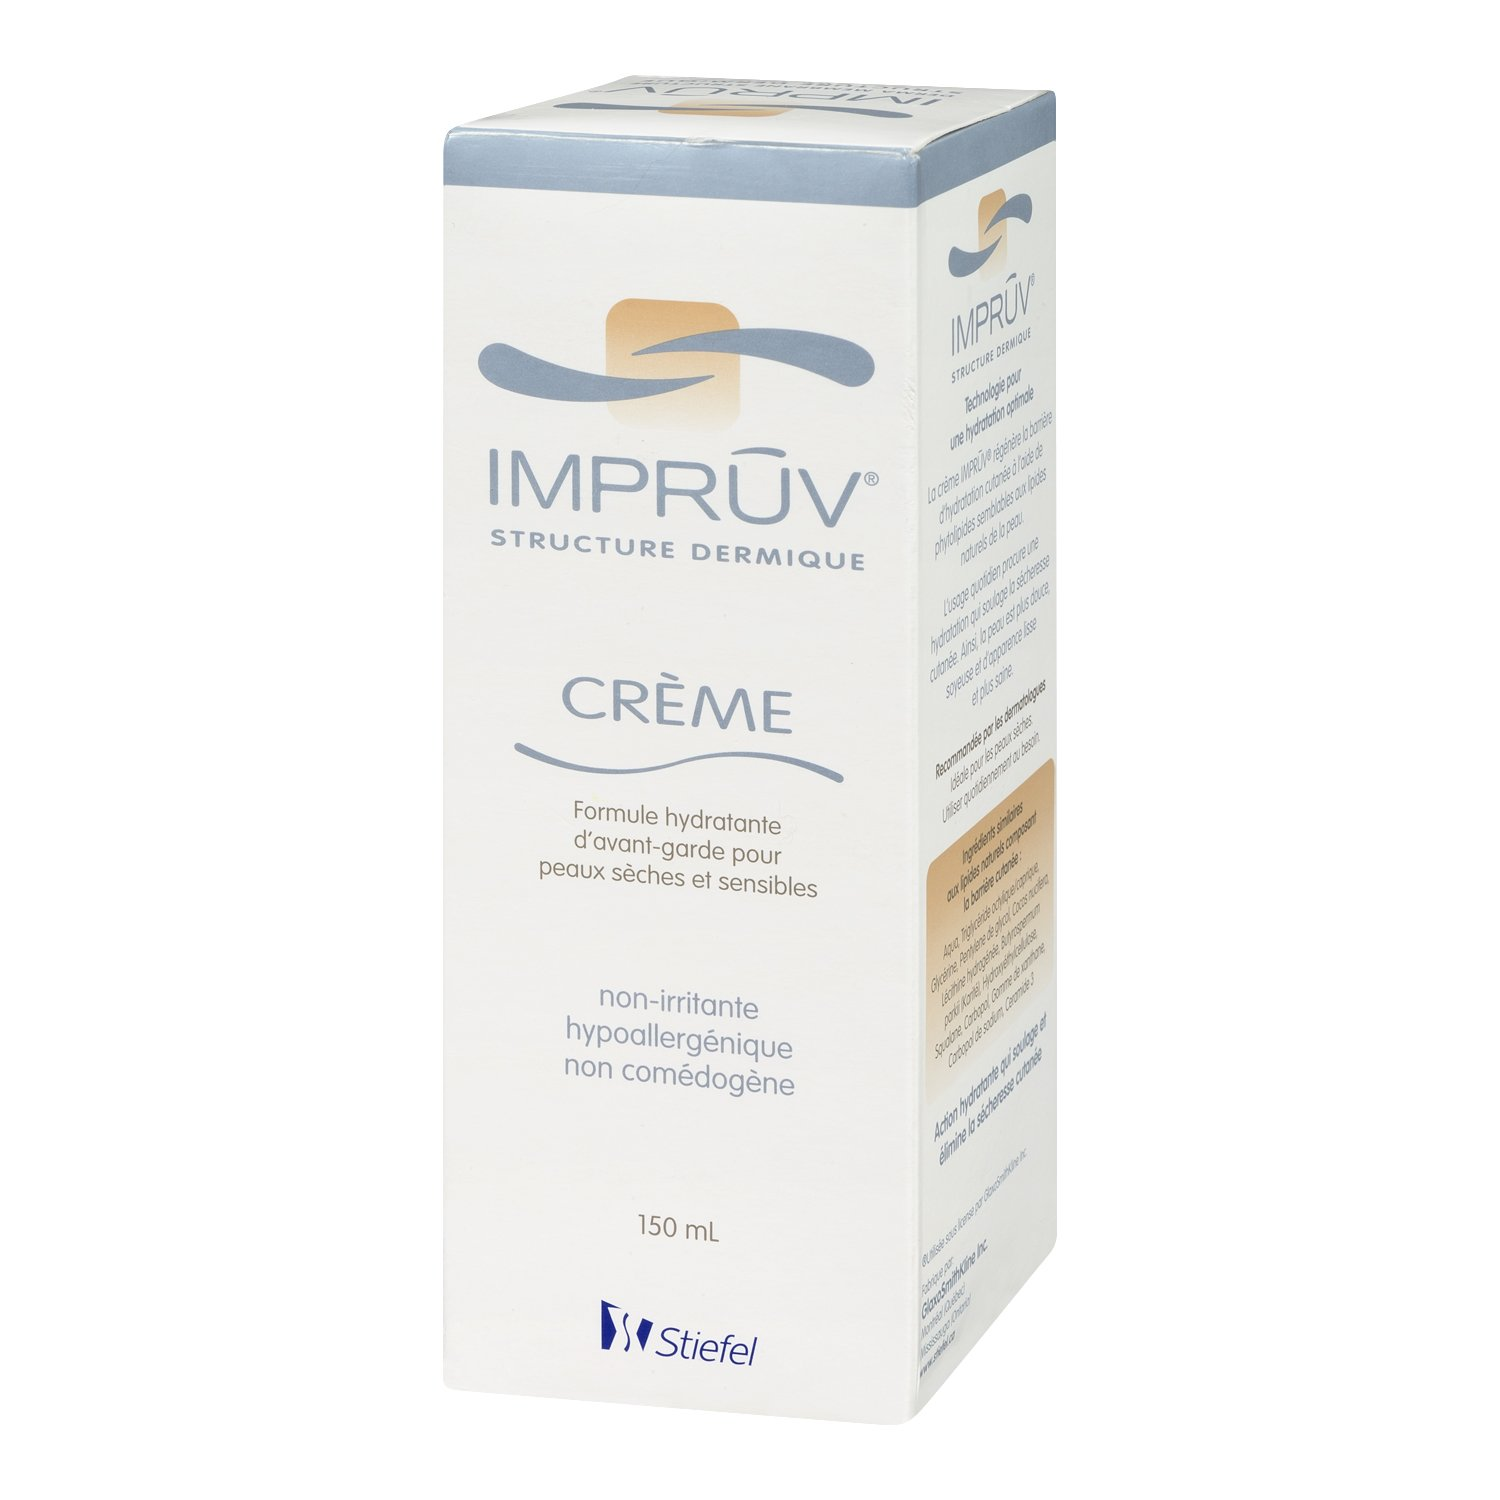 Impruv Non-Irritating Derma Cream Tube for Dry and Sensitive Skin, 150ml